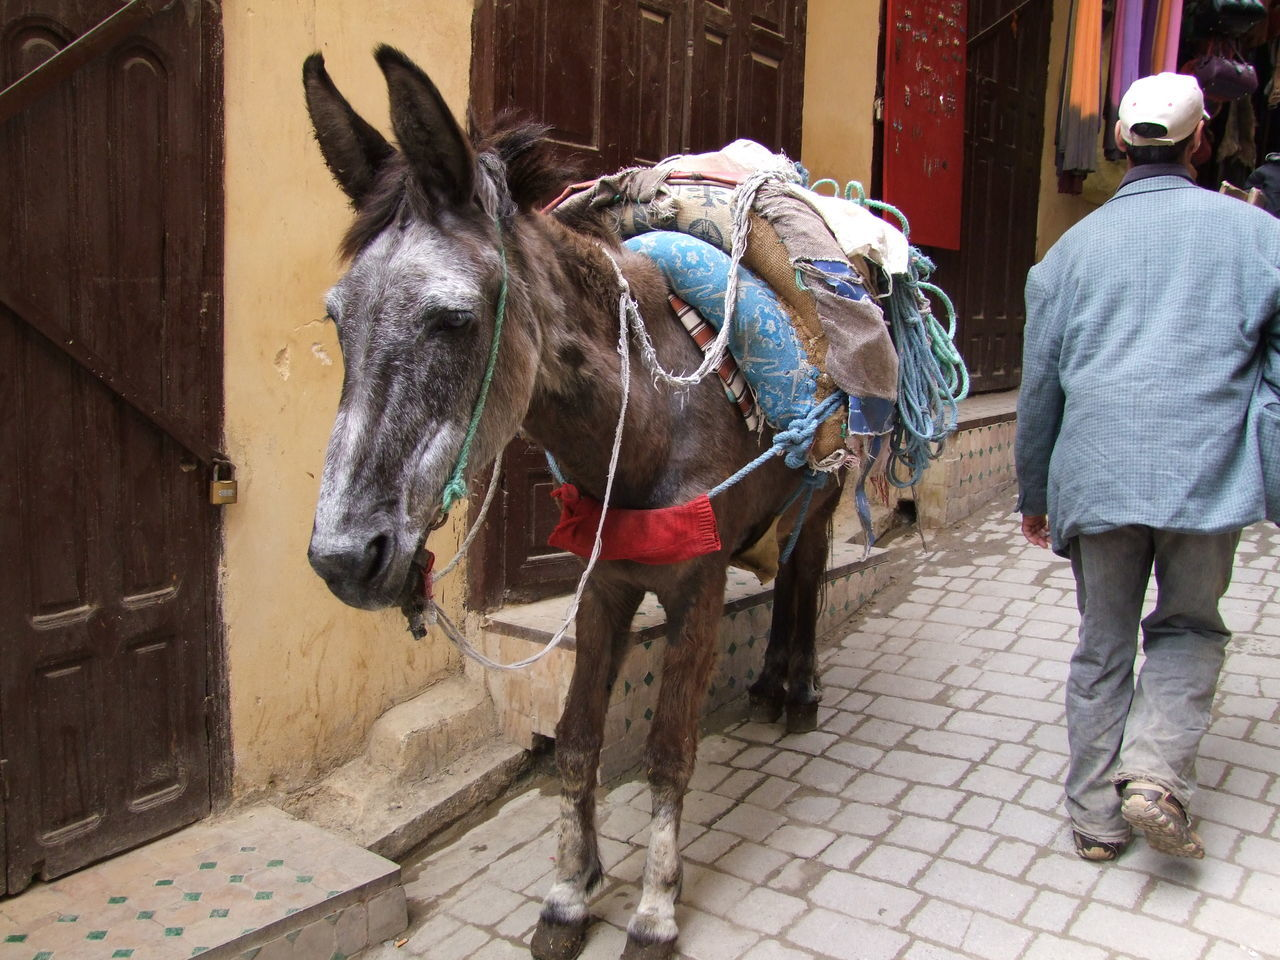 Working Donkey, Medina Animal Animal Themes Bridle City Composition Domestic Animal Donkey Famous Place Fes Full Frame Incidental Person Laden Medina Medina De Fez Morocco No People Old City One Animal Outdoor Photography Street Sunlight Tourist Attraction  Tourist Destination Working Animal Working Donkey